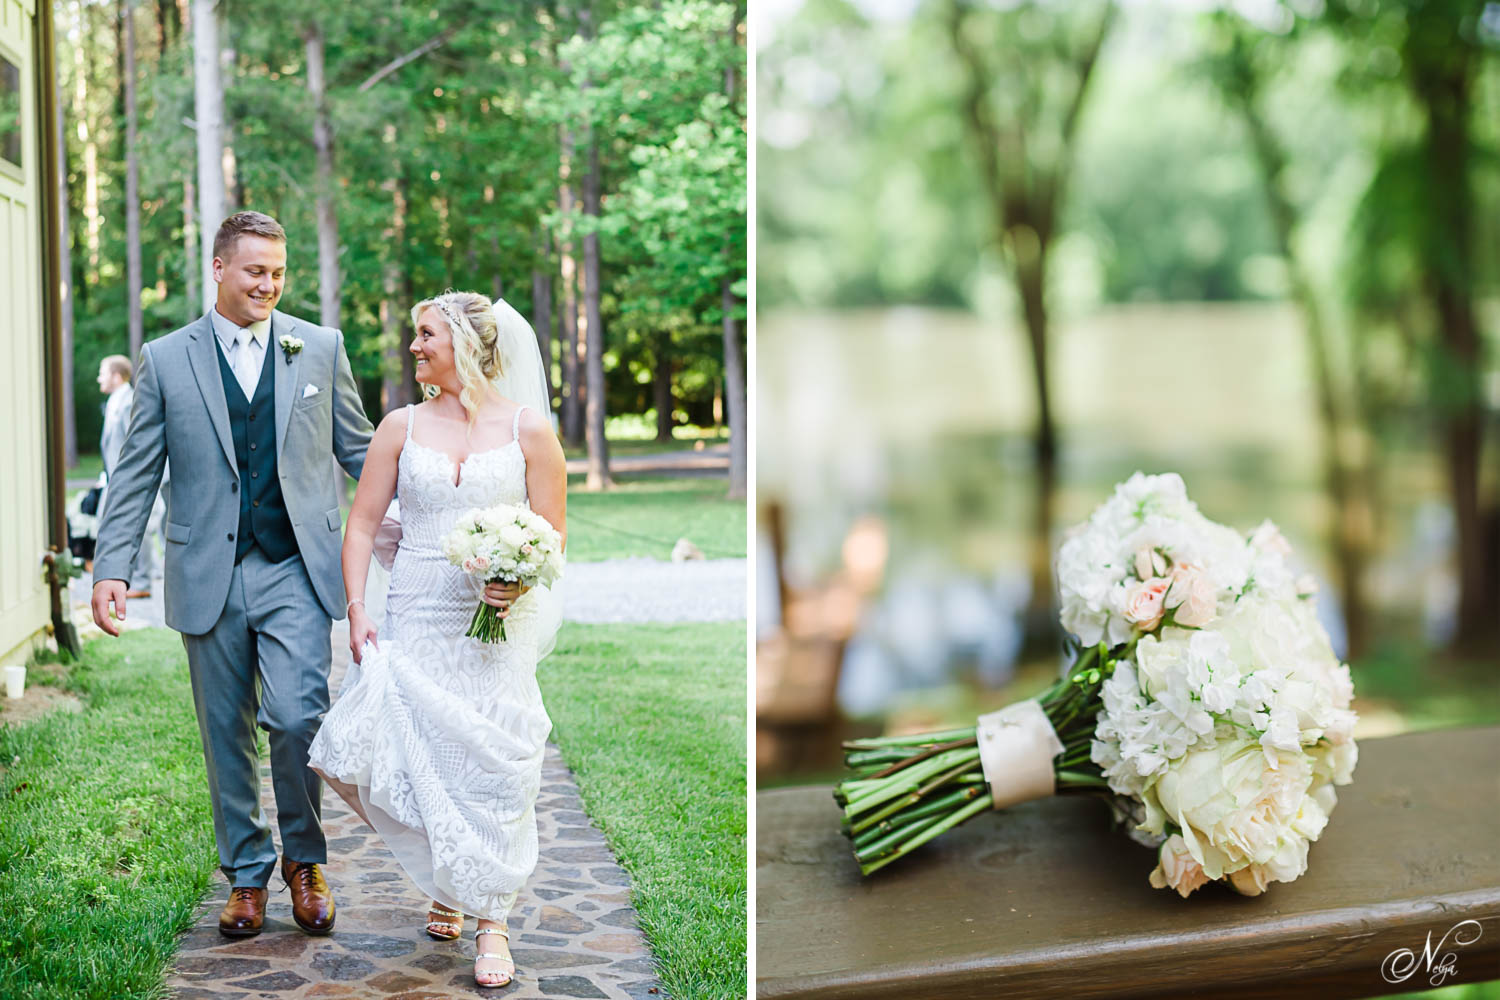 groom helping hold his brides dress from touching the ground at Hiwassee River weddings at their june wedding. And white rose bouquet with river in the background.